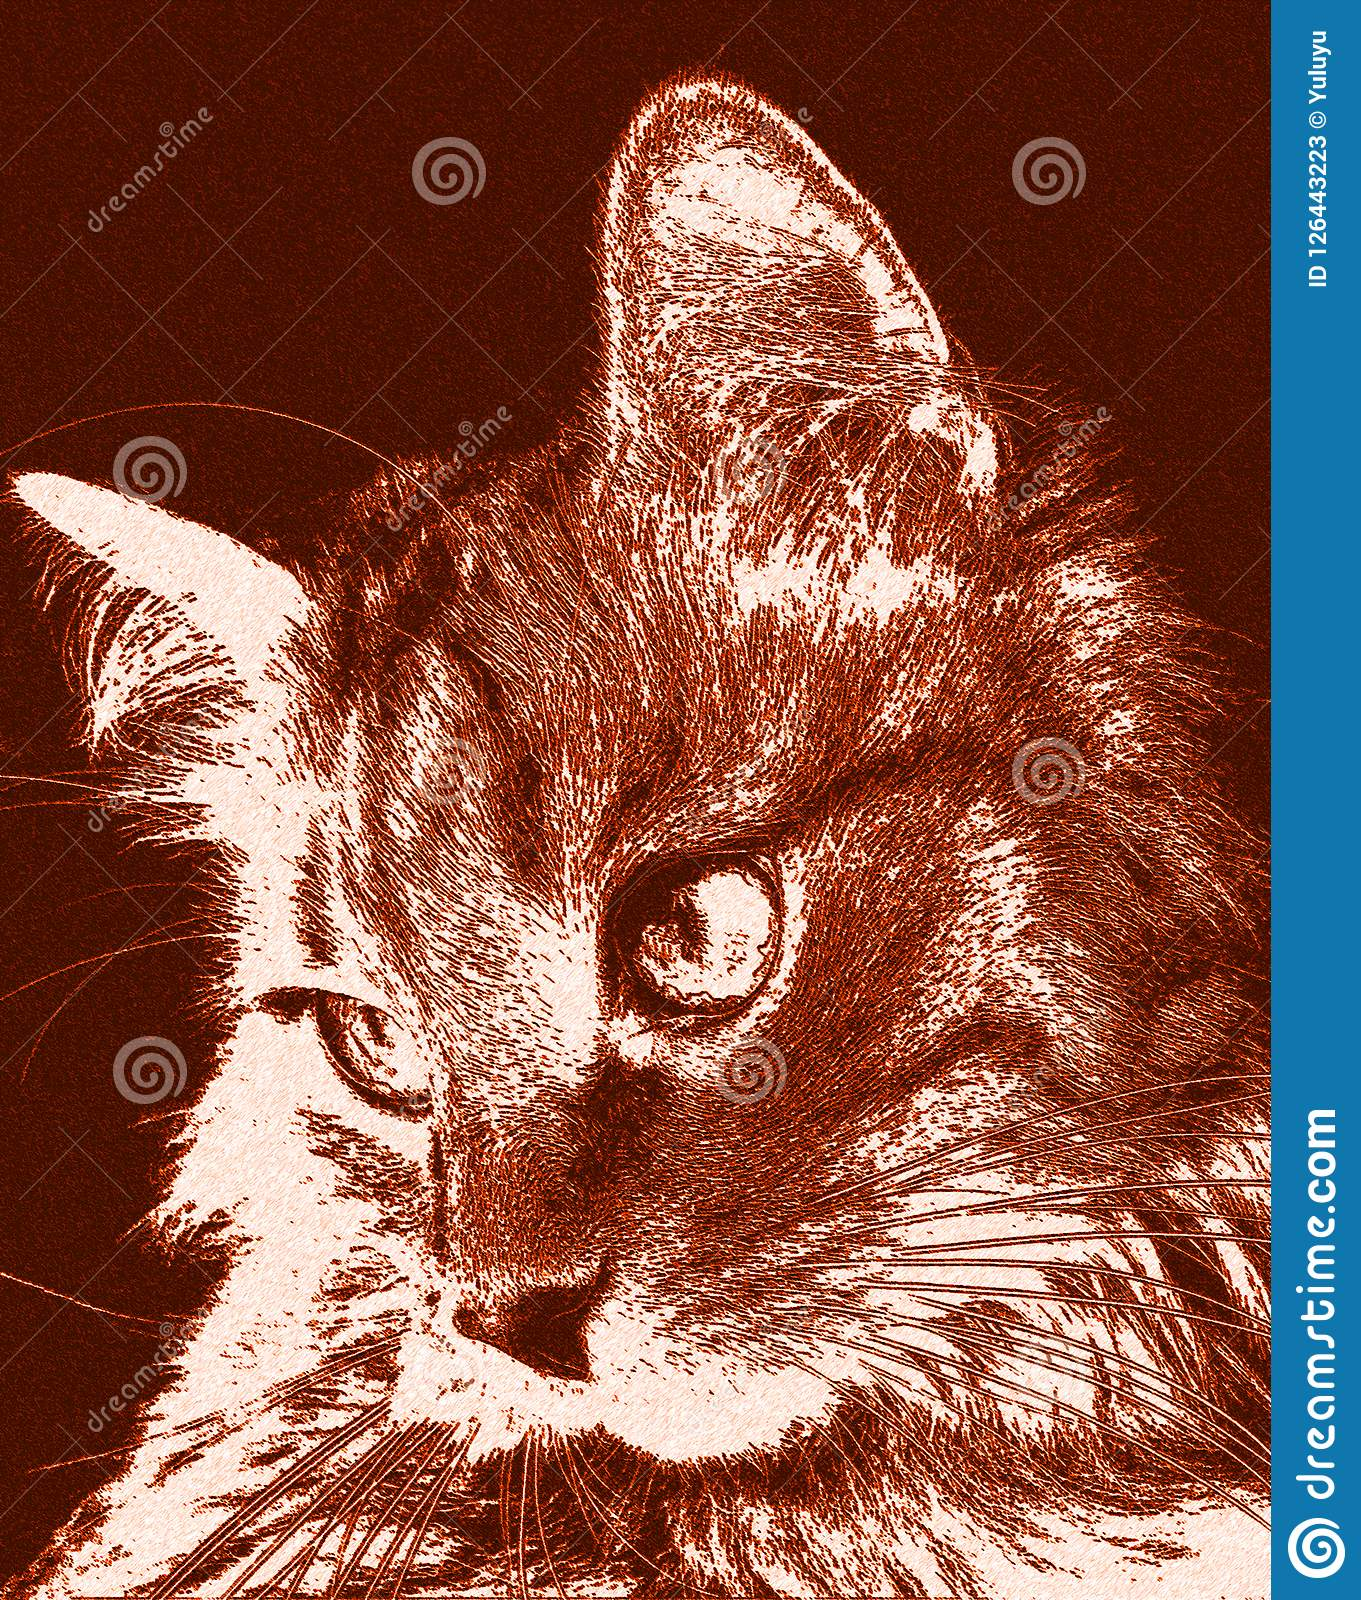 Cute Cat Relaxed Looking To The Side Portrait Of A Cat S Face In Profile Stock Illustration Illustration Of Looking Decorative 126443223